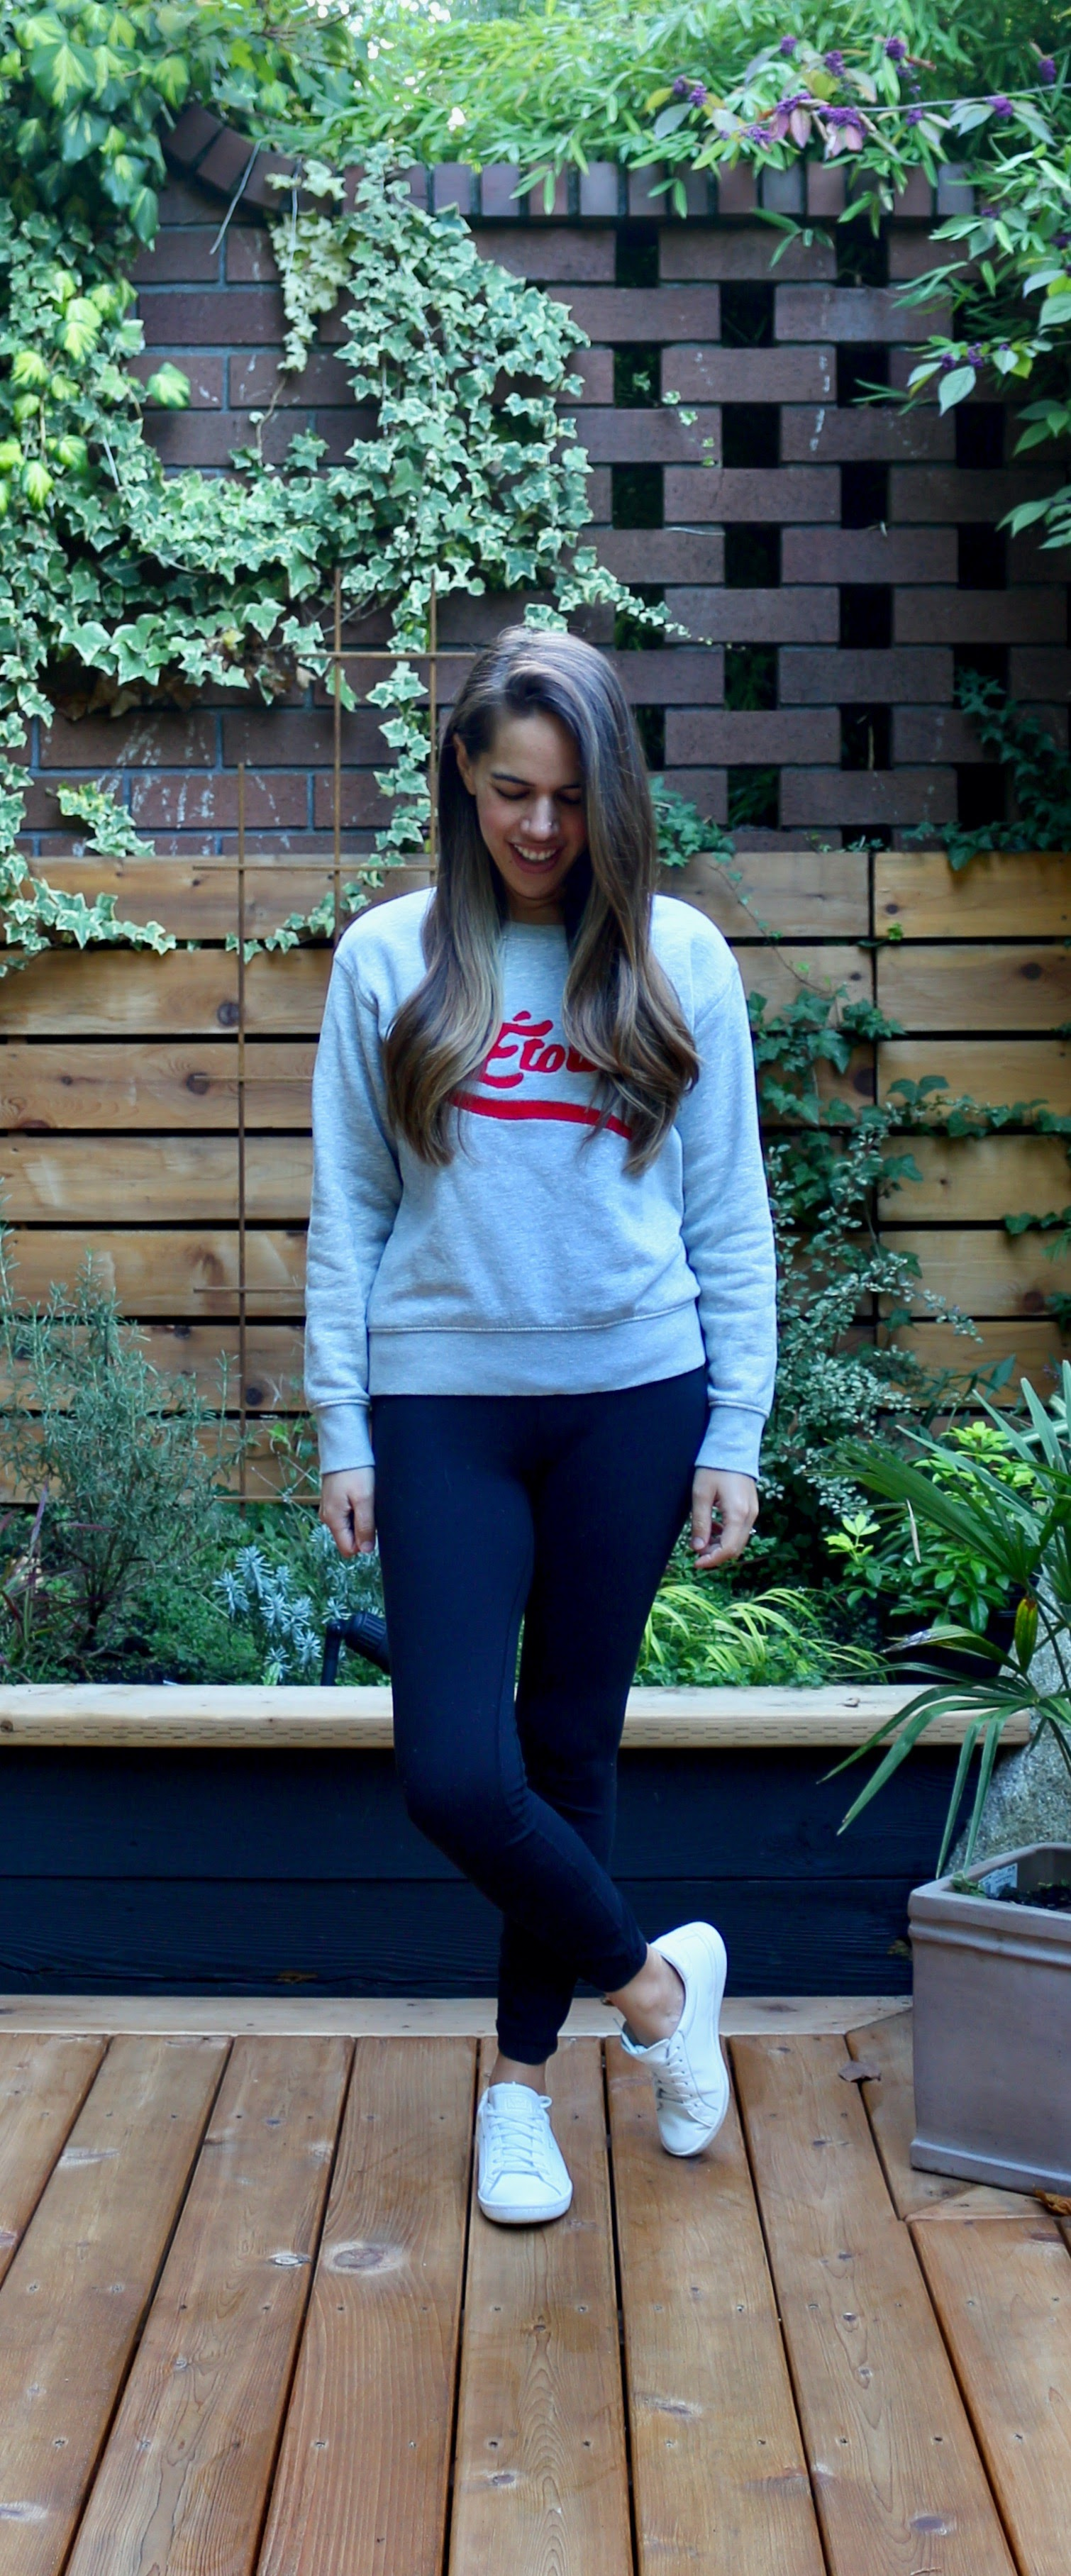 Jules in Flats - WFH Outfit - Graphic Sweatshirt + Leggings (Business Casual Workwear on a Budget)